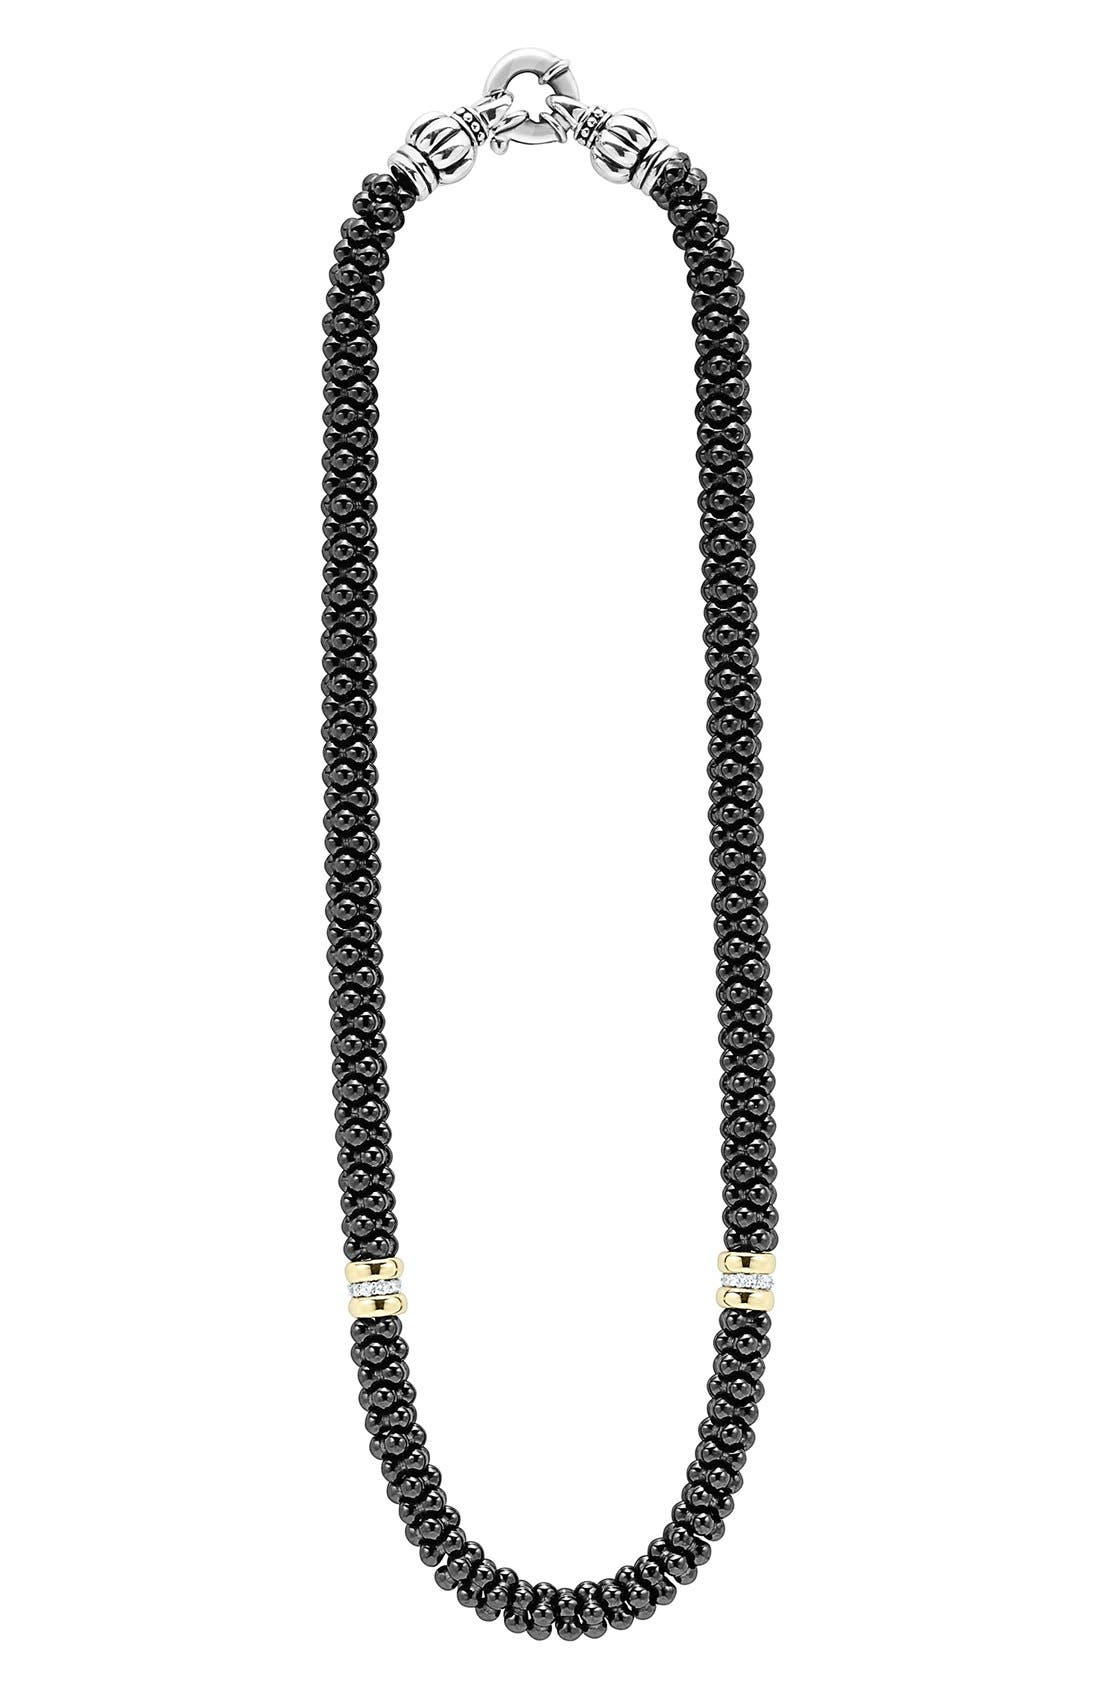 'Black Caviar' 7mm Beaded Diamond Station Necklace,                             Main thumbnail 1, color,                             Black Caviar/ Gold